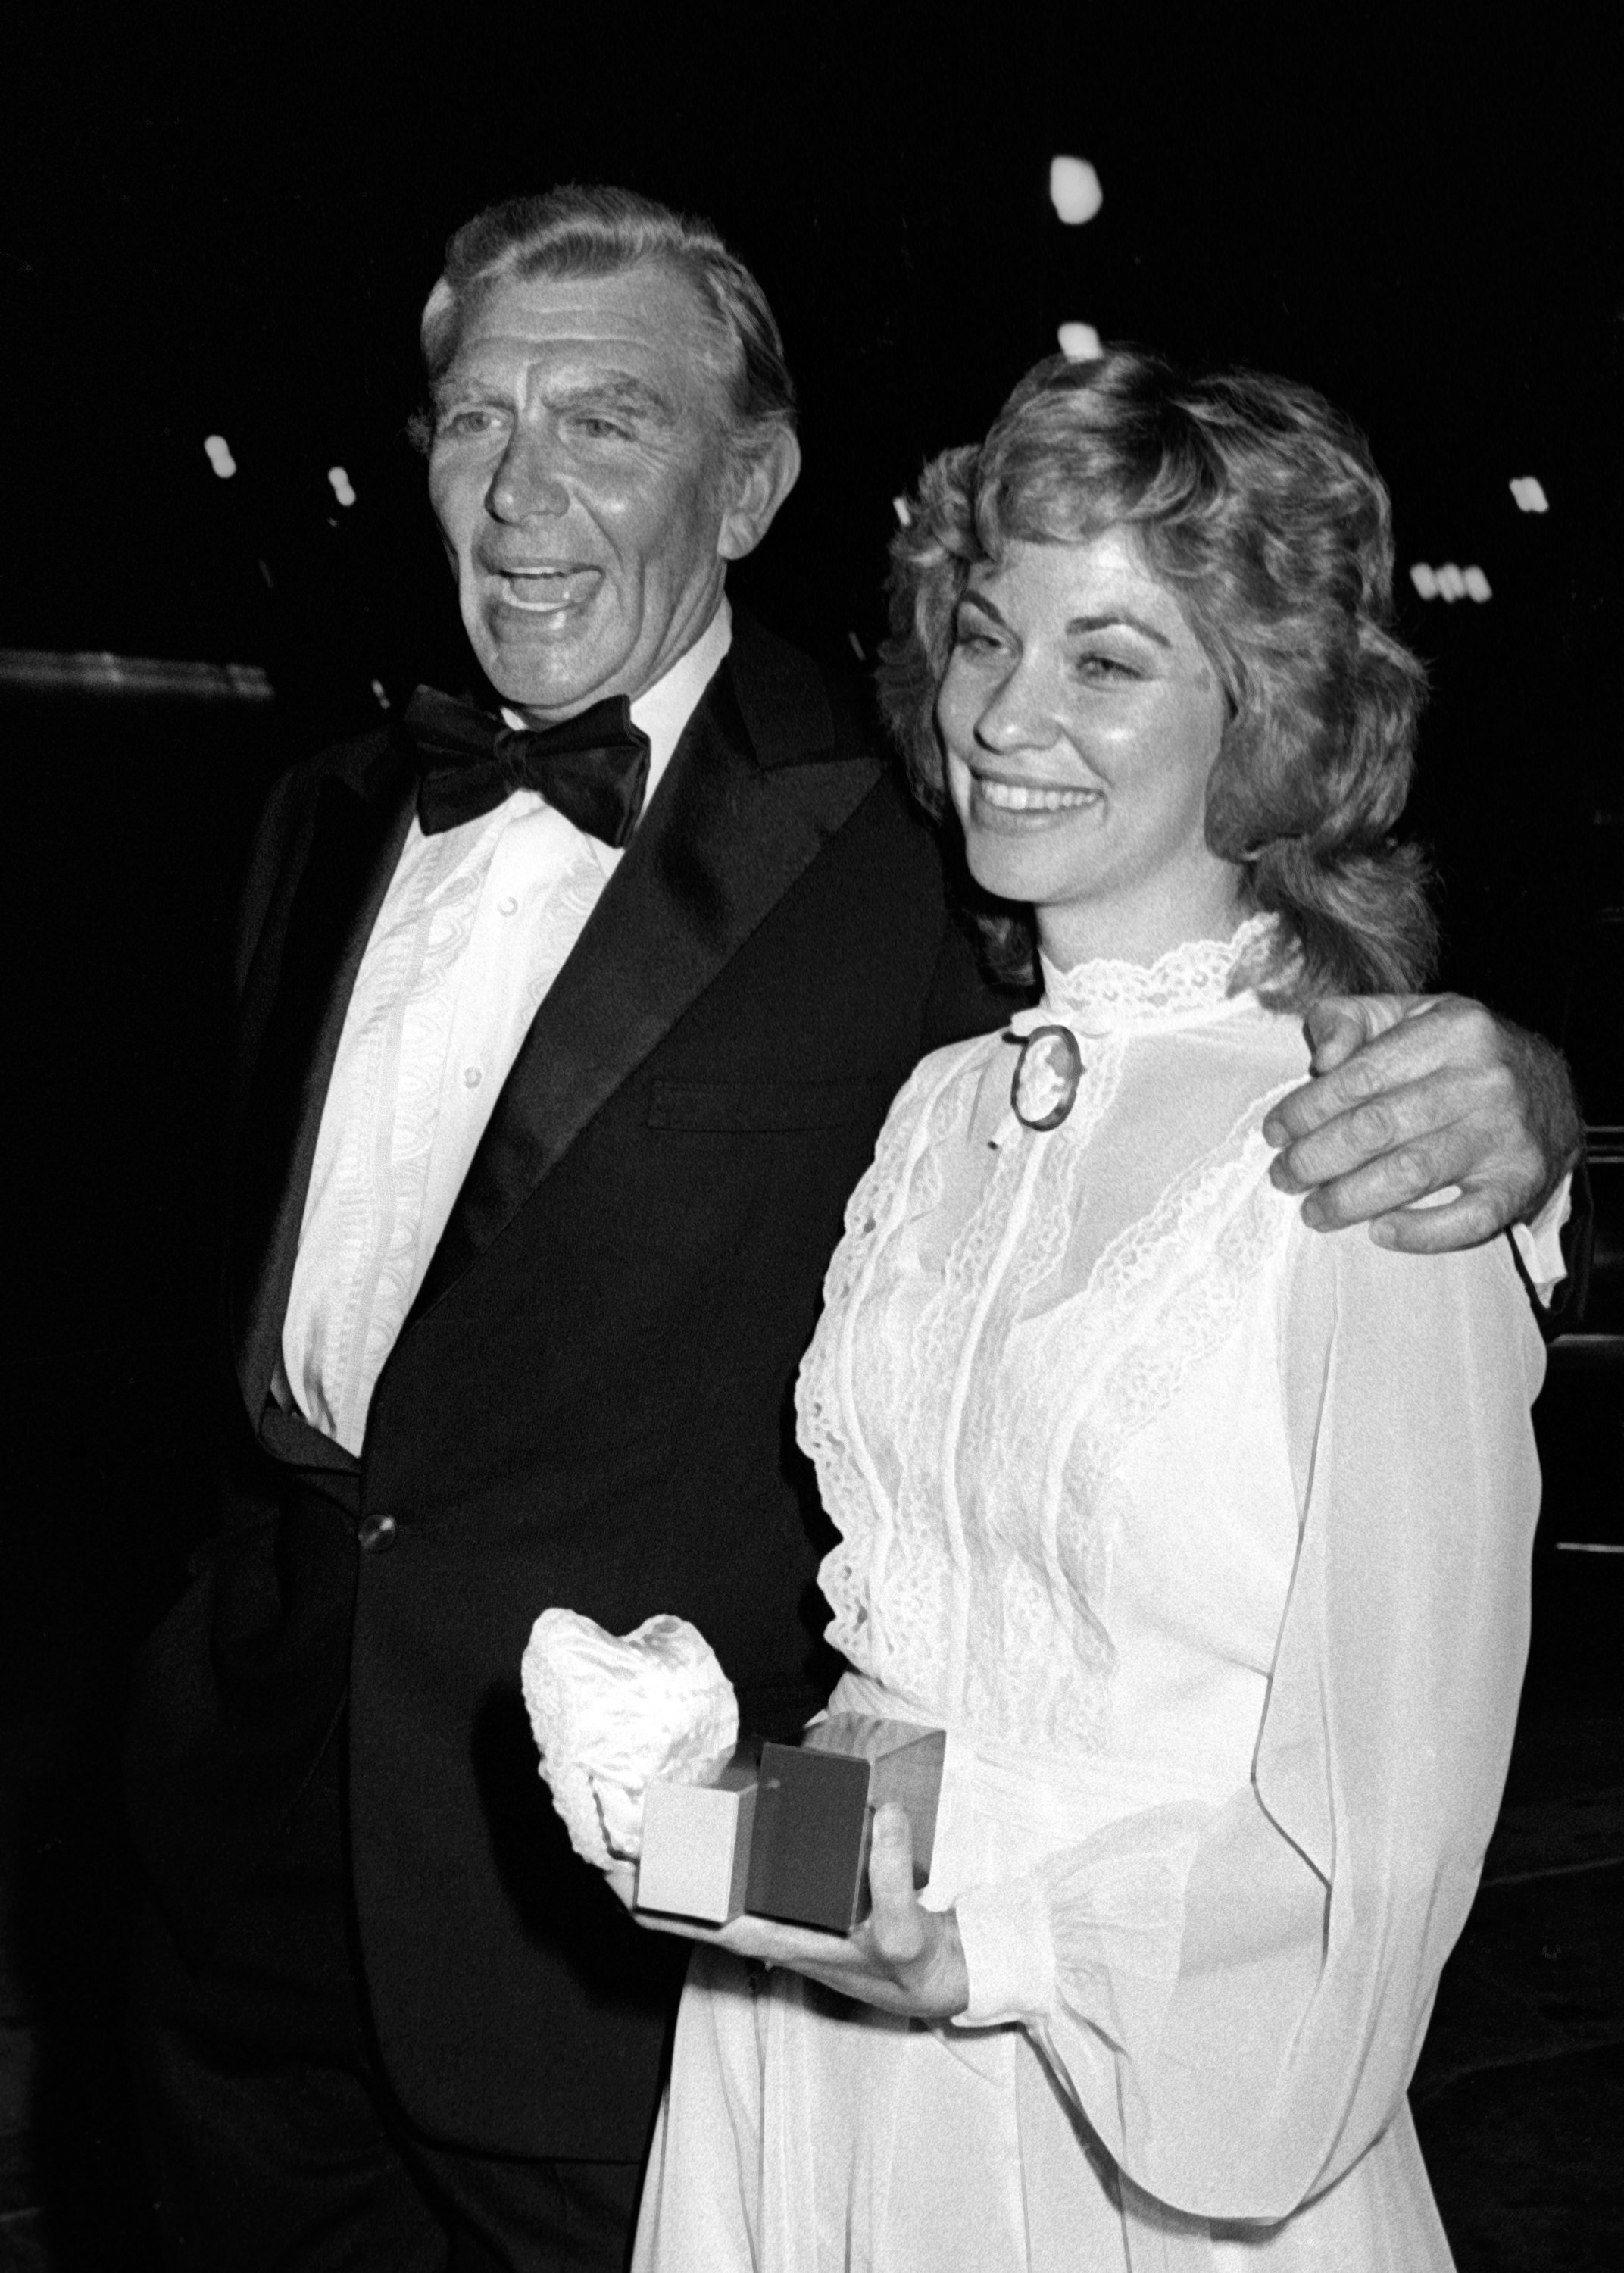 Andy Griffith and wife Cindi Knight attend the party for 33rd Annual Primetime Emmy Awards on September 13, 1981, in Los Angeles, California.   Source: Getty Images